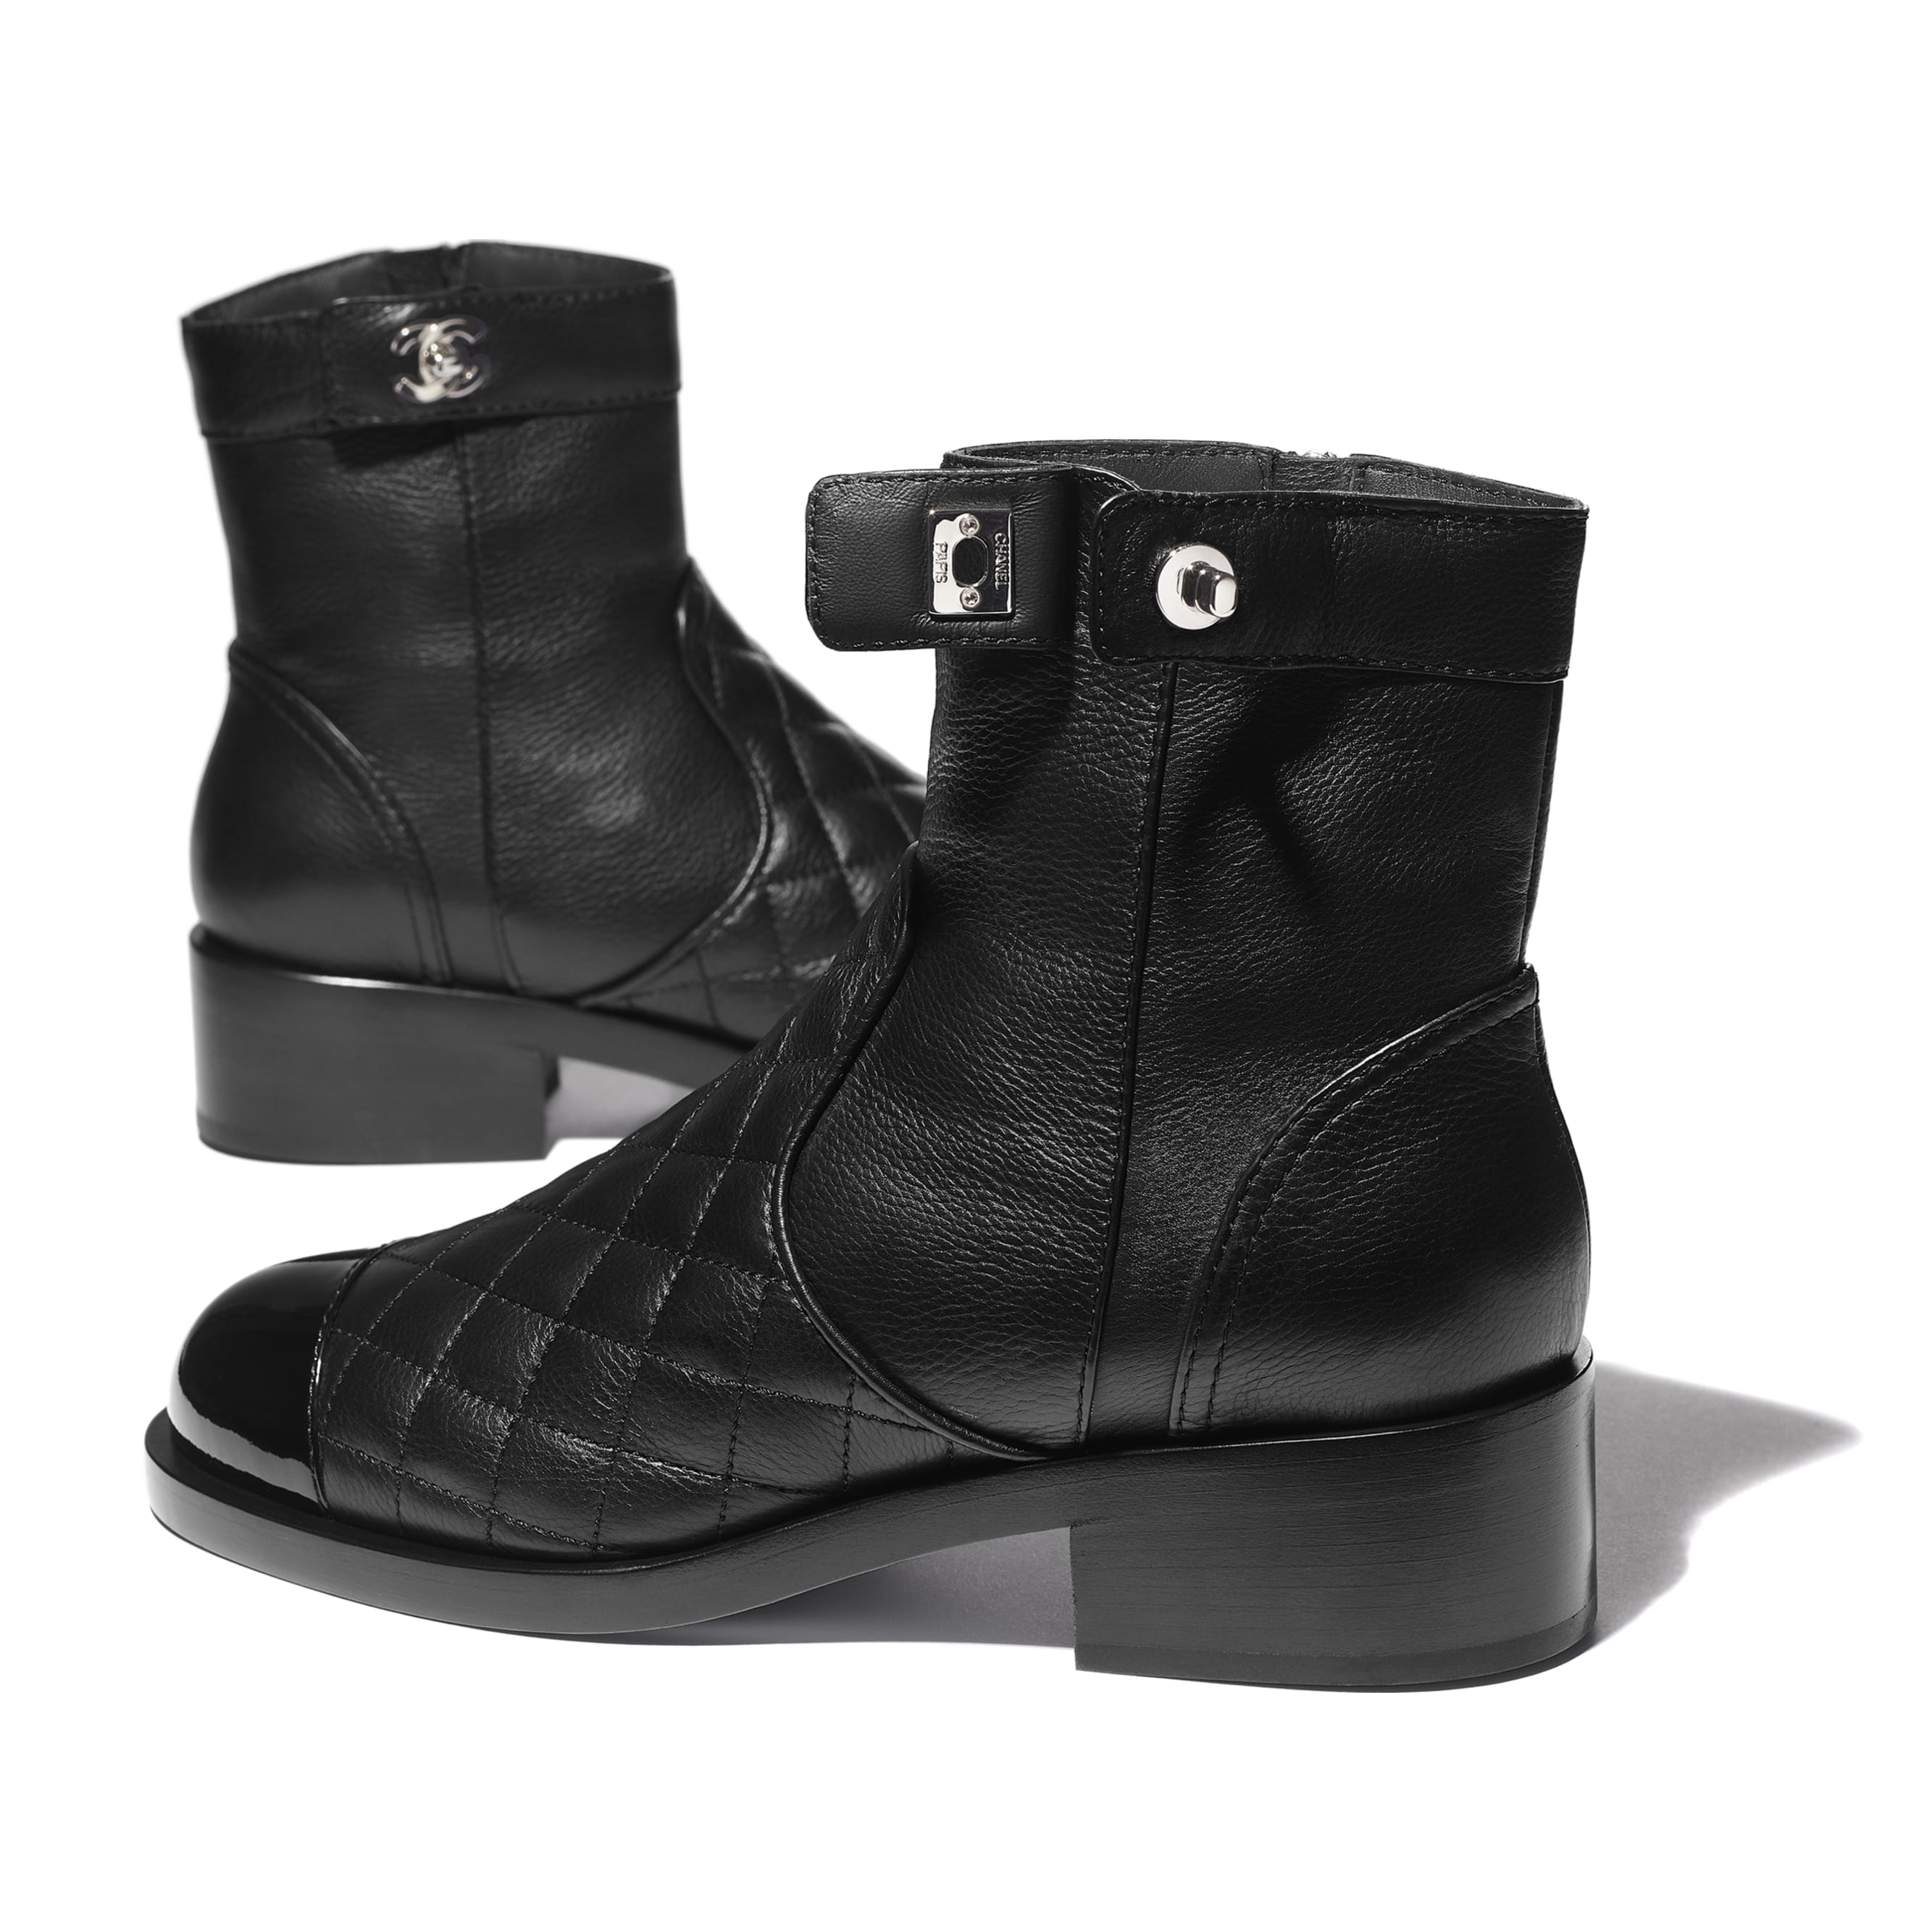 Ankle Boots - Black - Calfskin & Patent Calfskin - CHANEL - Extra view - see standard sized version